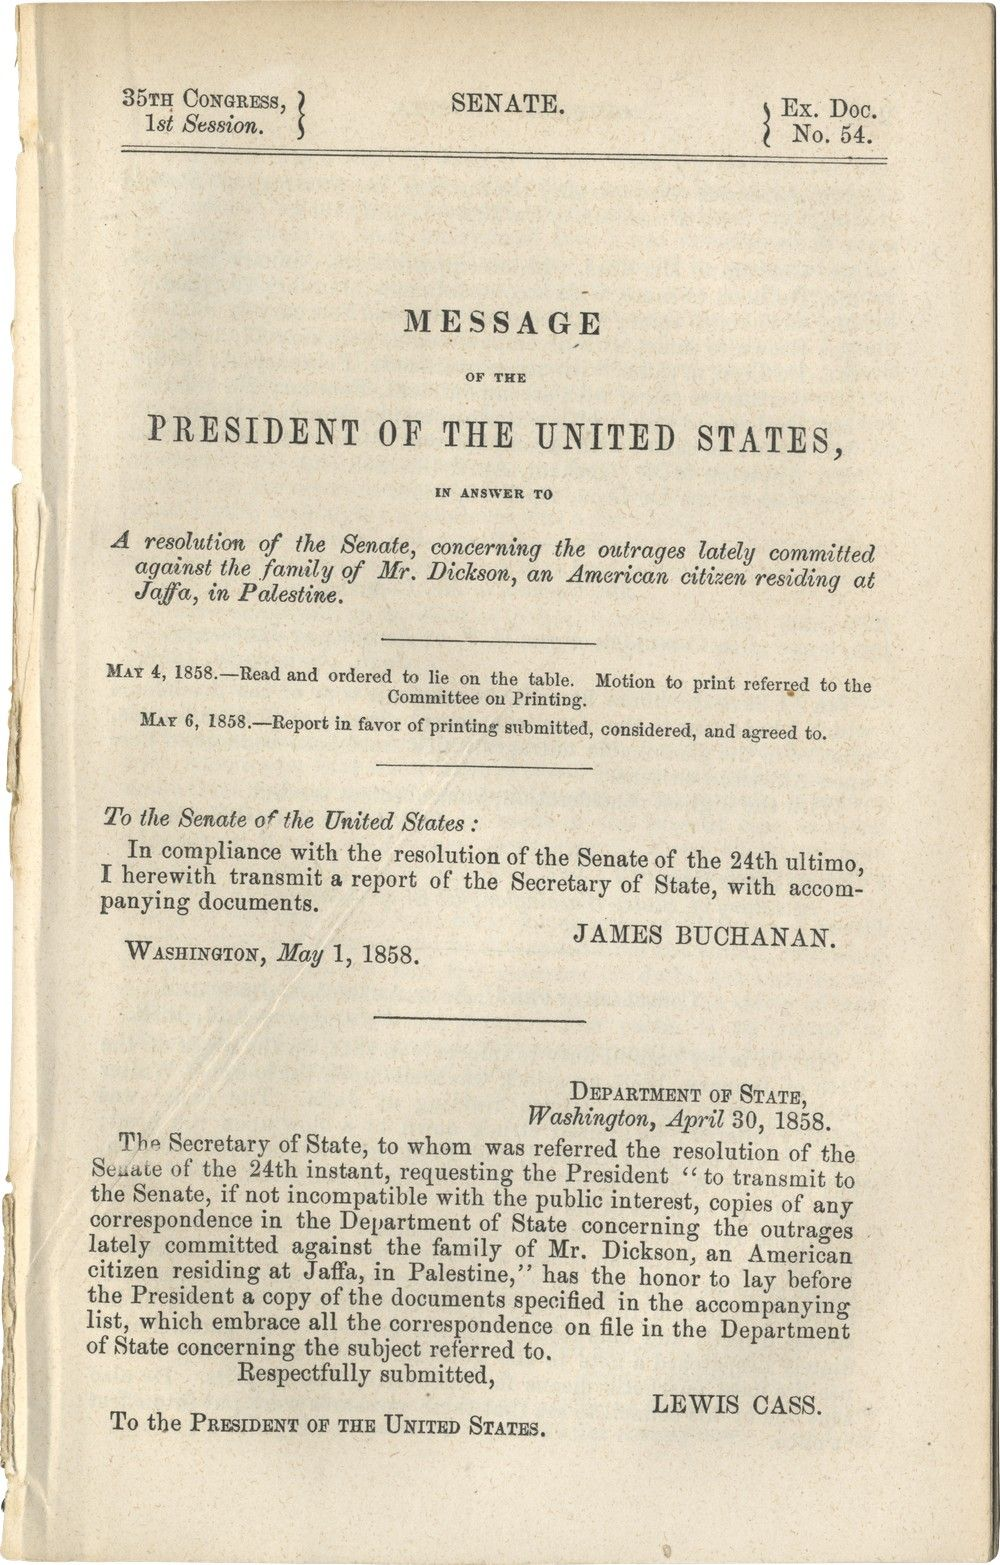 """1858 Senate Report Regarding the """"Outrages at Jaffa"""" - The Rape and Murder of the Dickson Family Colony"""